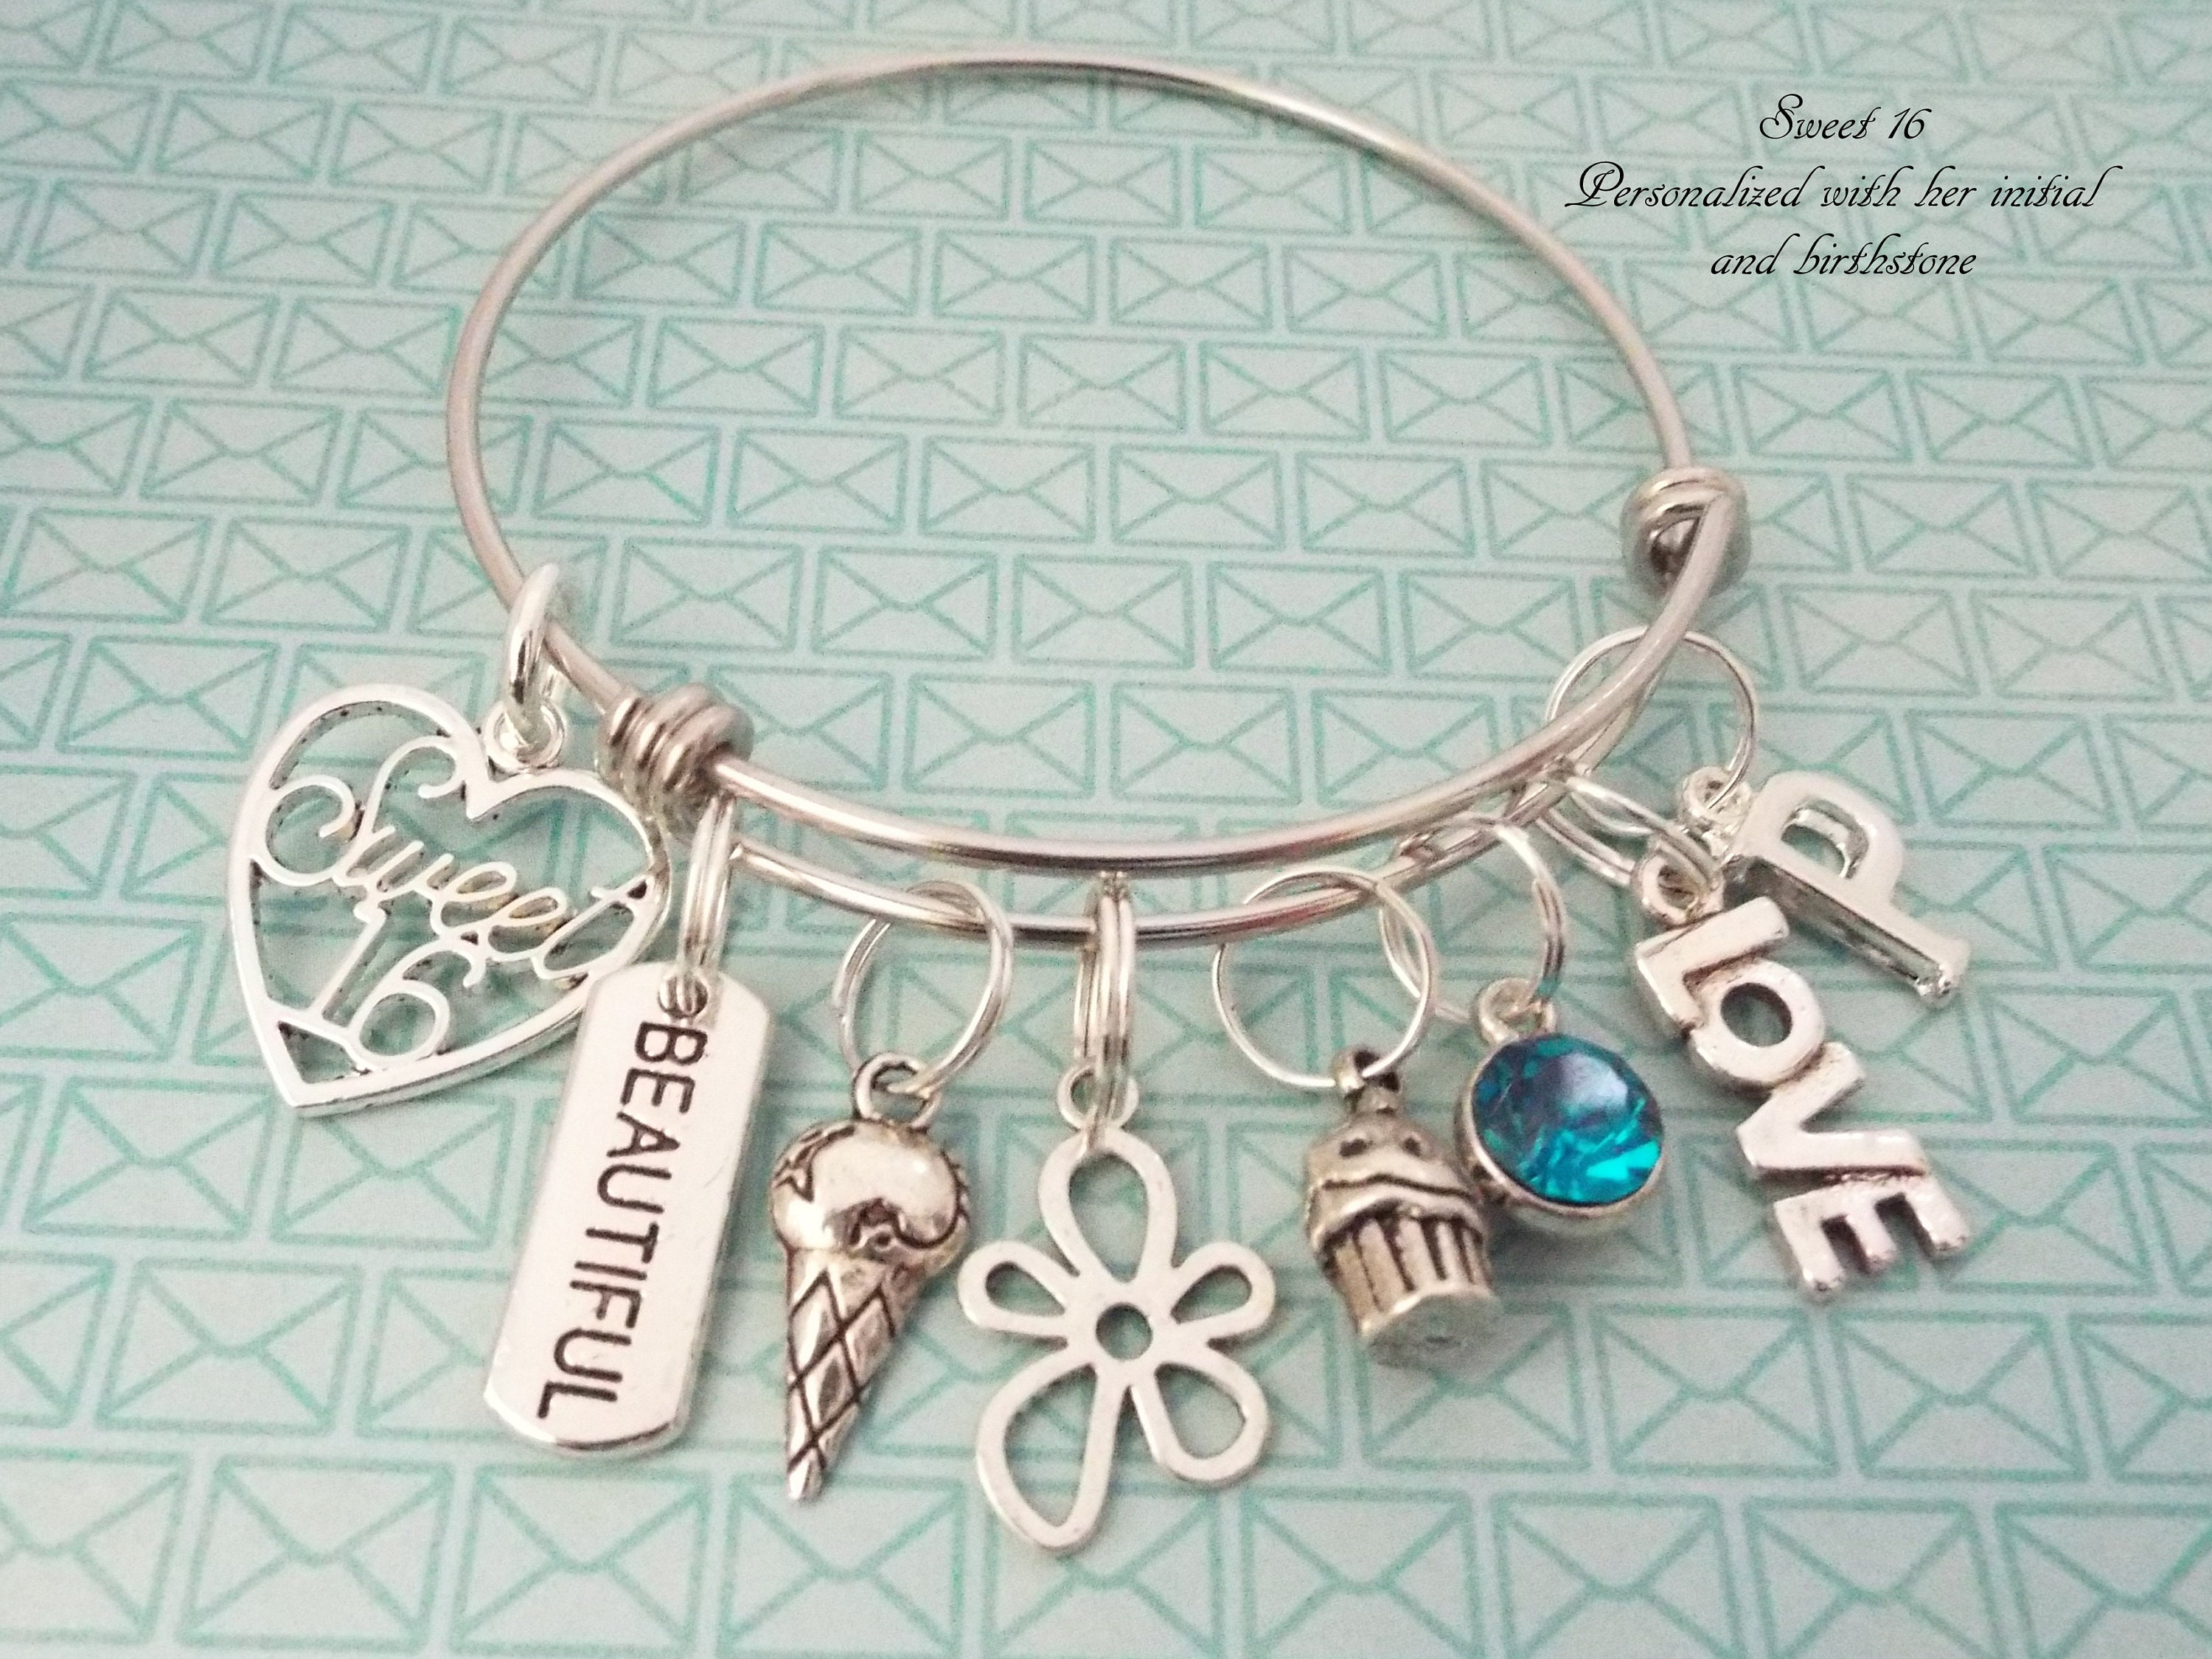 Sweet 16 Gift 16th Birthday For Girl Gifts Her Personalized Jewelry Daughter